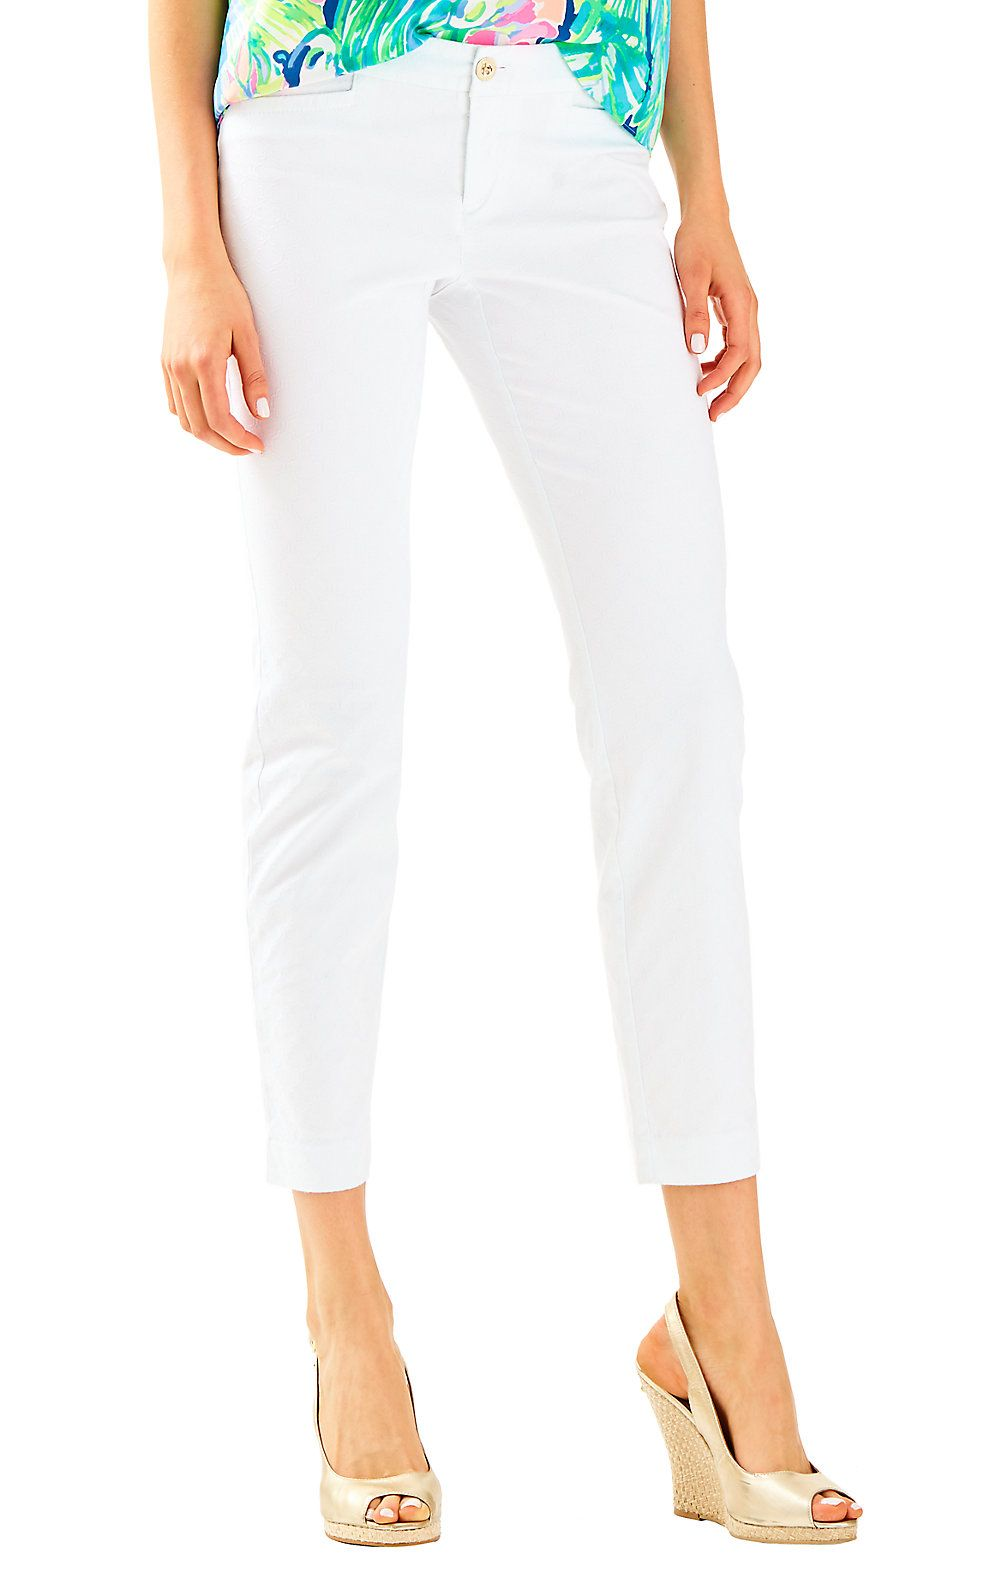 fff33f6bf9ed9 LILLY PULITZER KELLY TEXTURED ANKLE LENGTH SKINNY PANT. #lillypulitzer  #cloth #